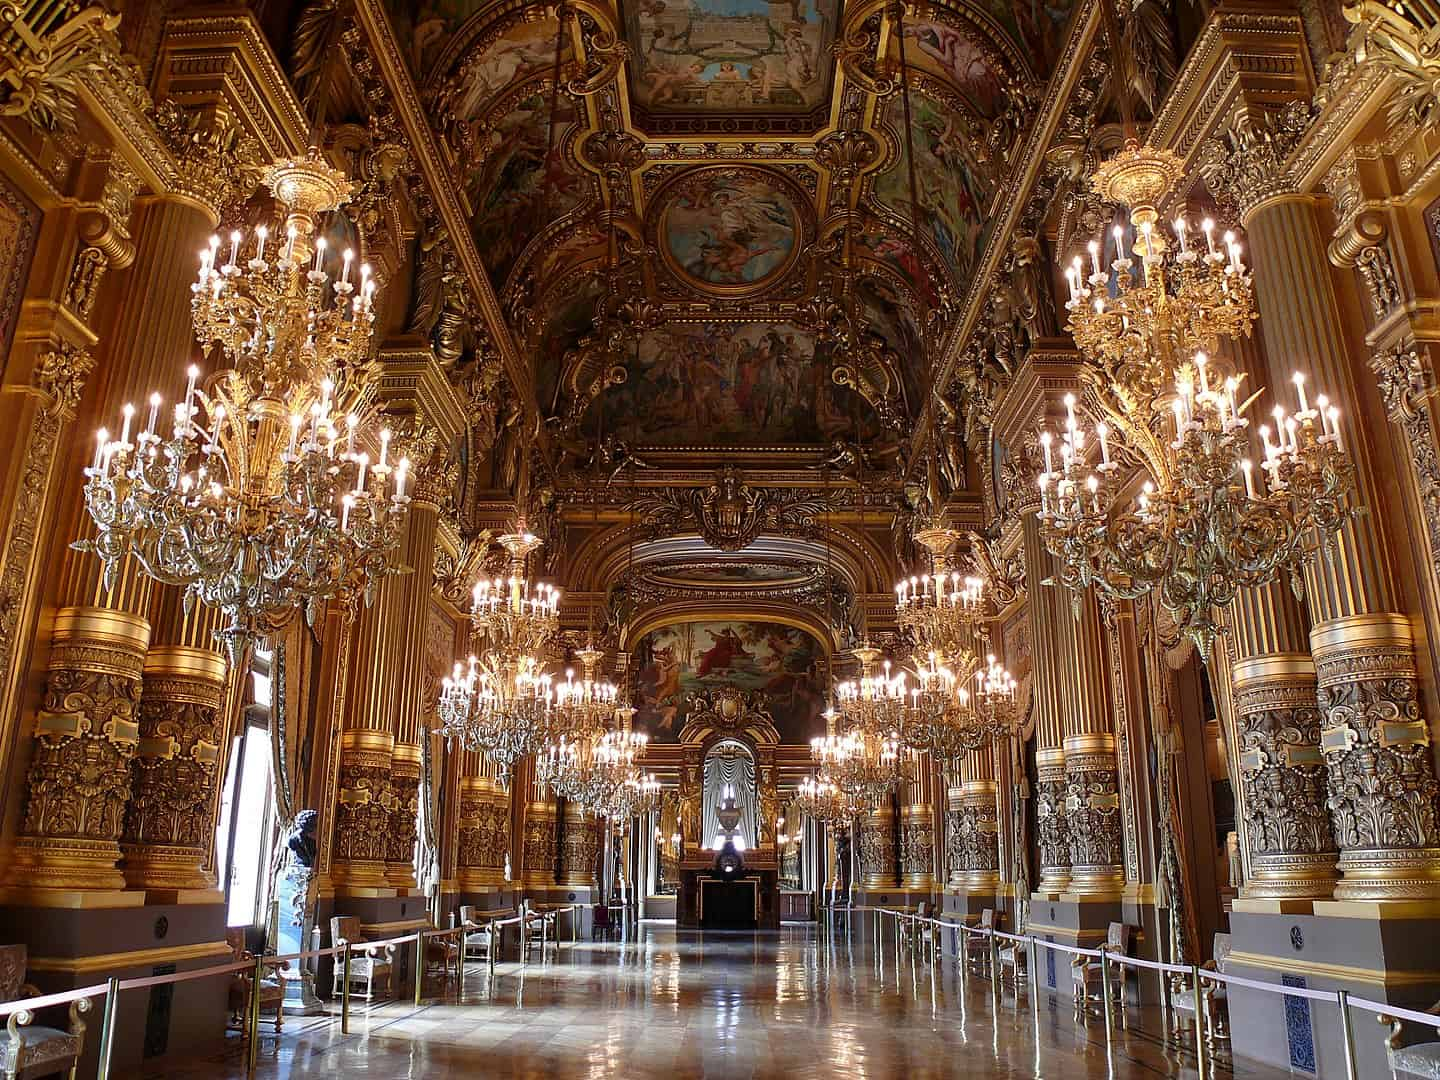 The Grand Foyer of the Opera de Paris' Palais Garnier.